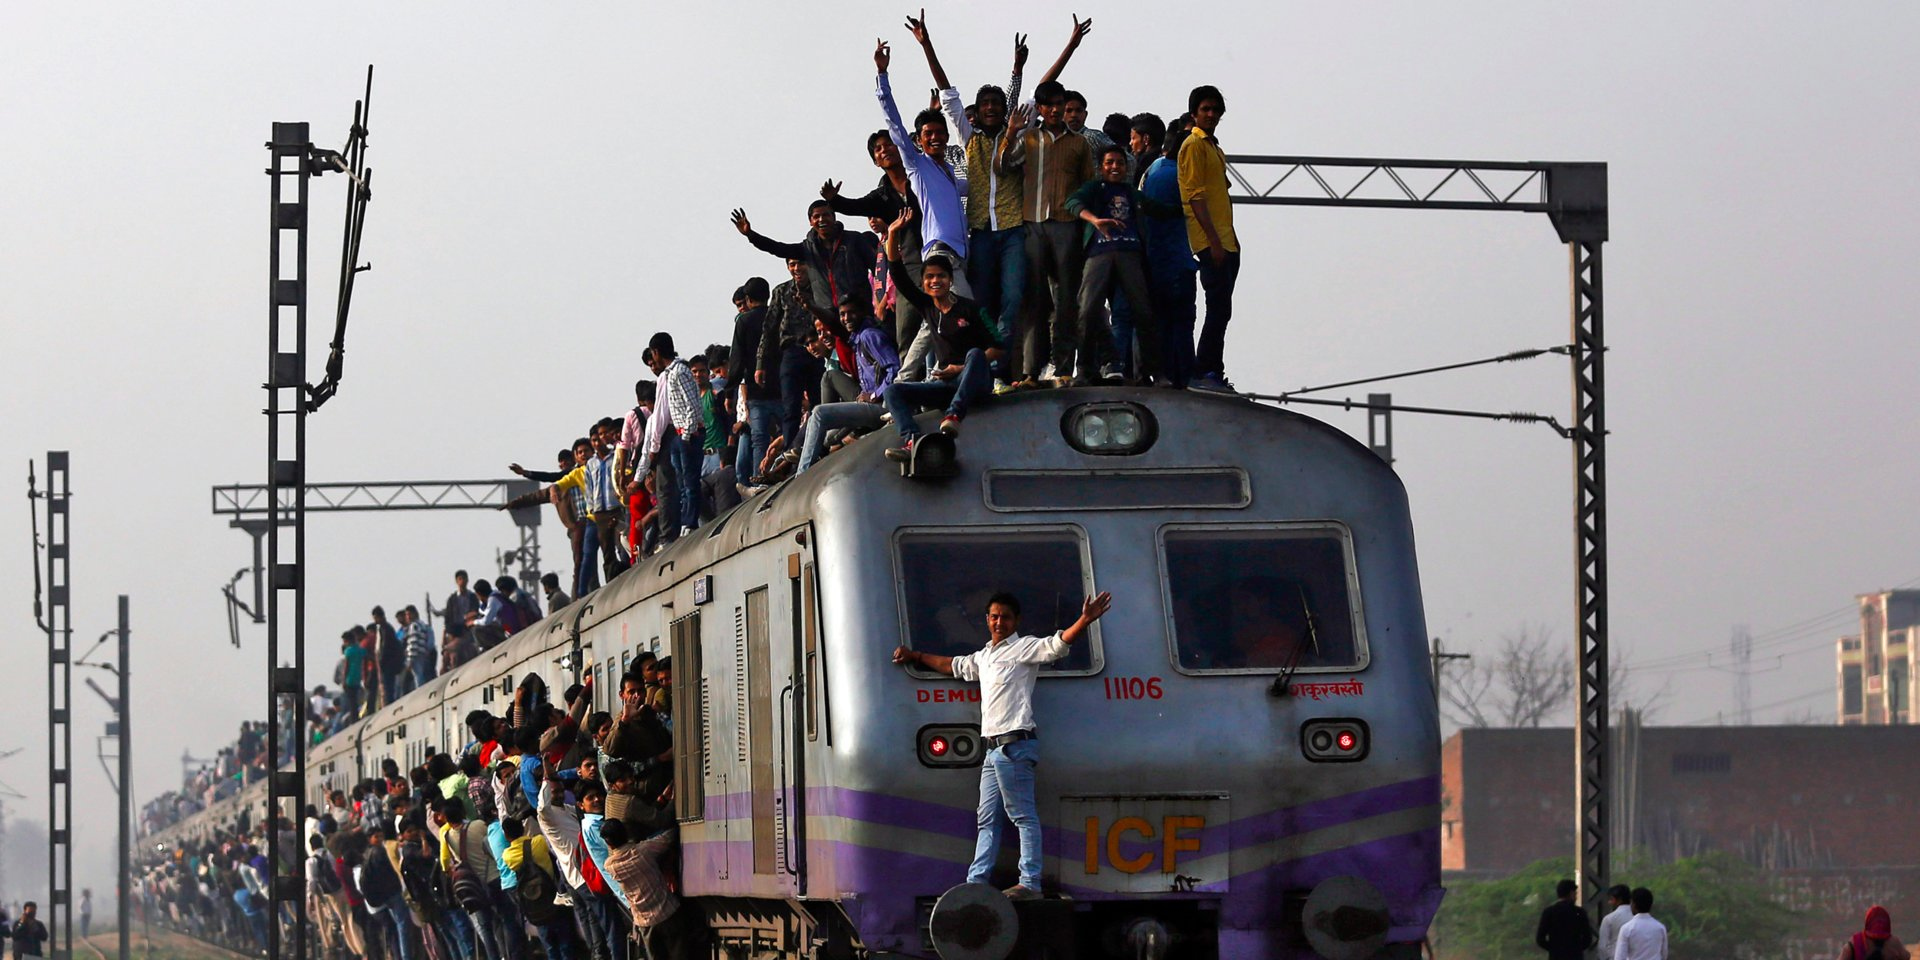 Crowded Railway Stations in India